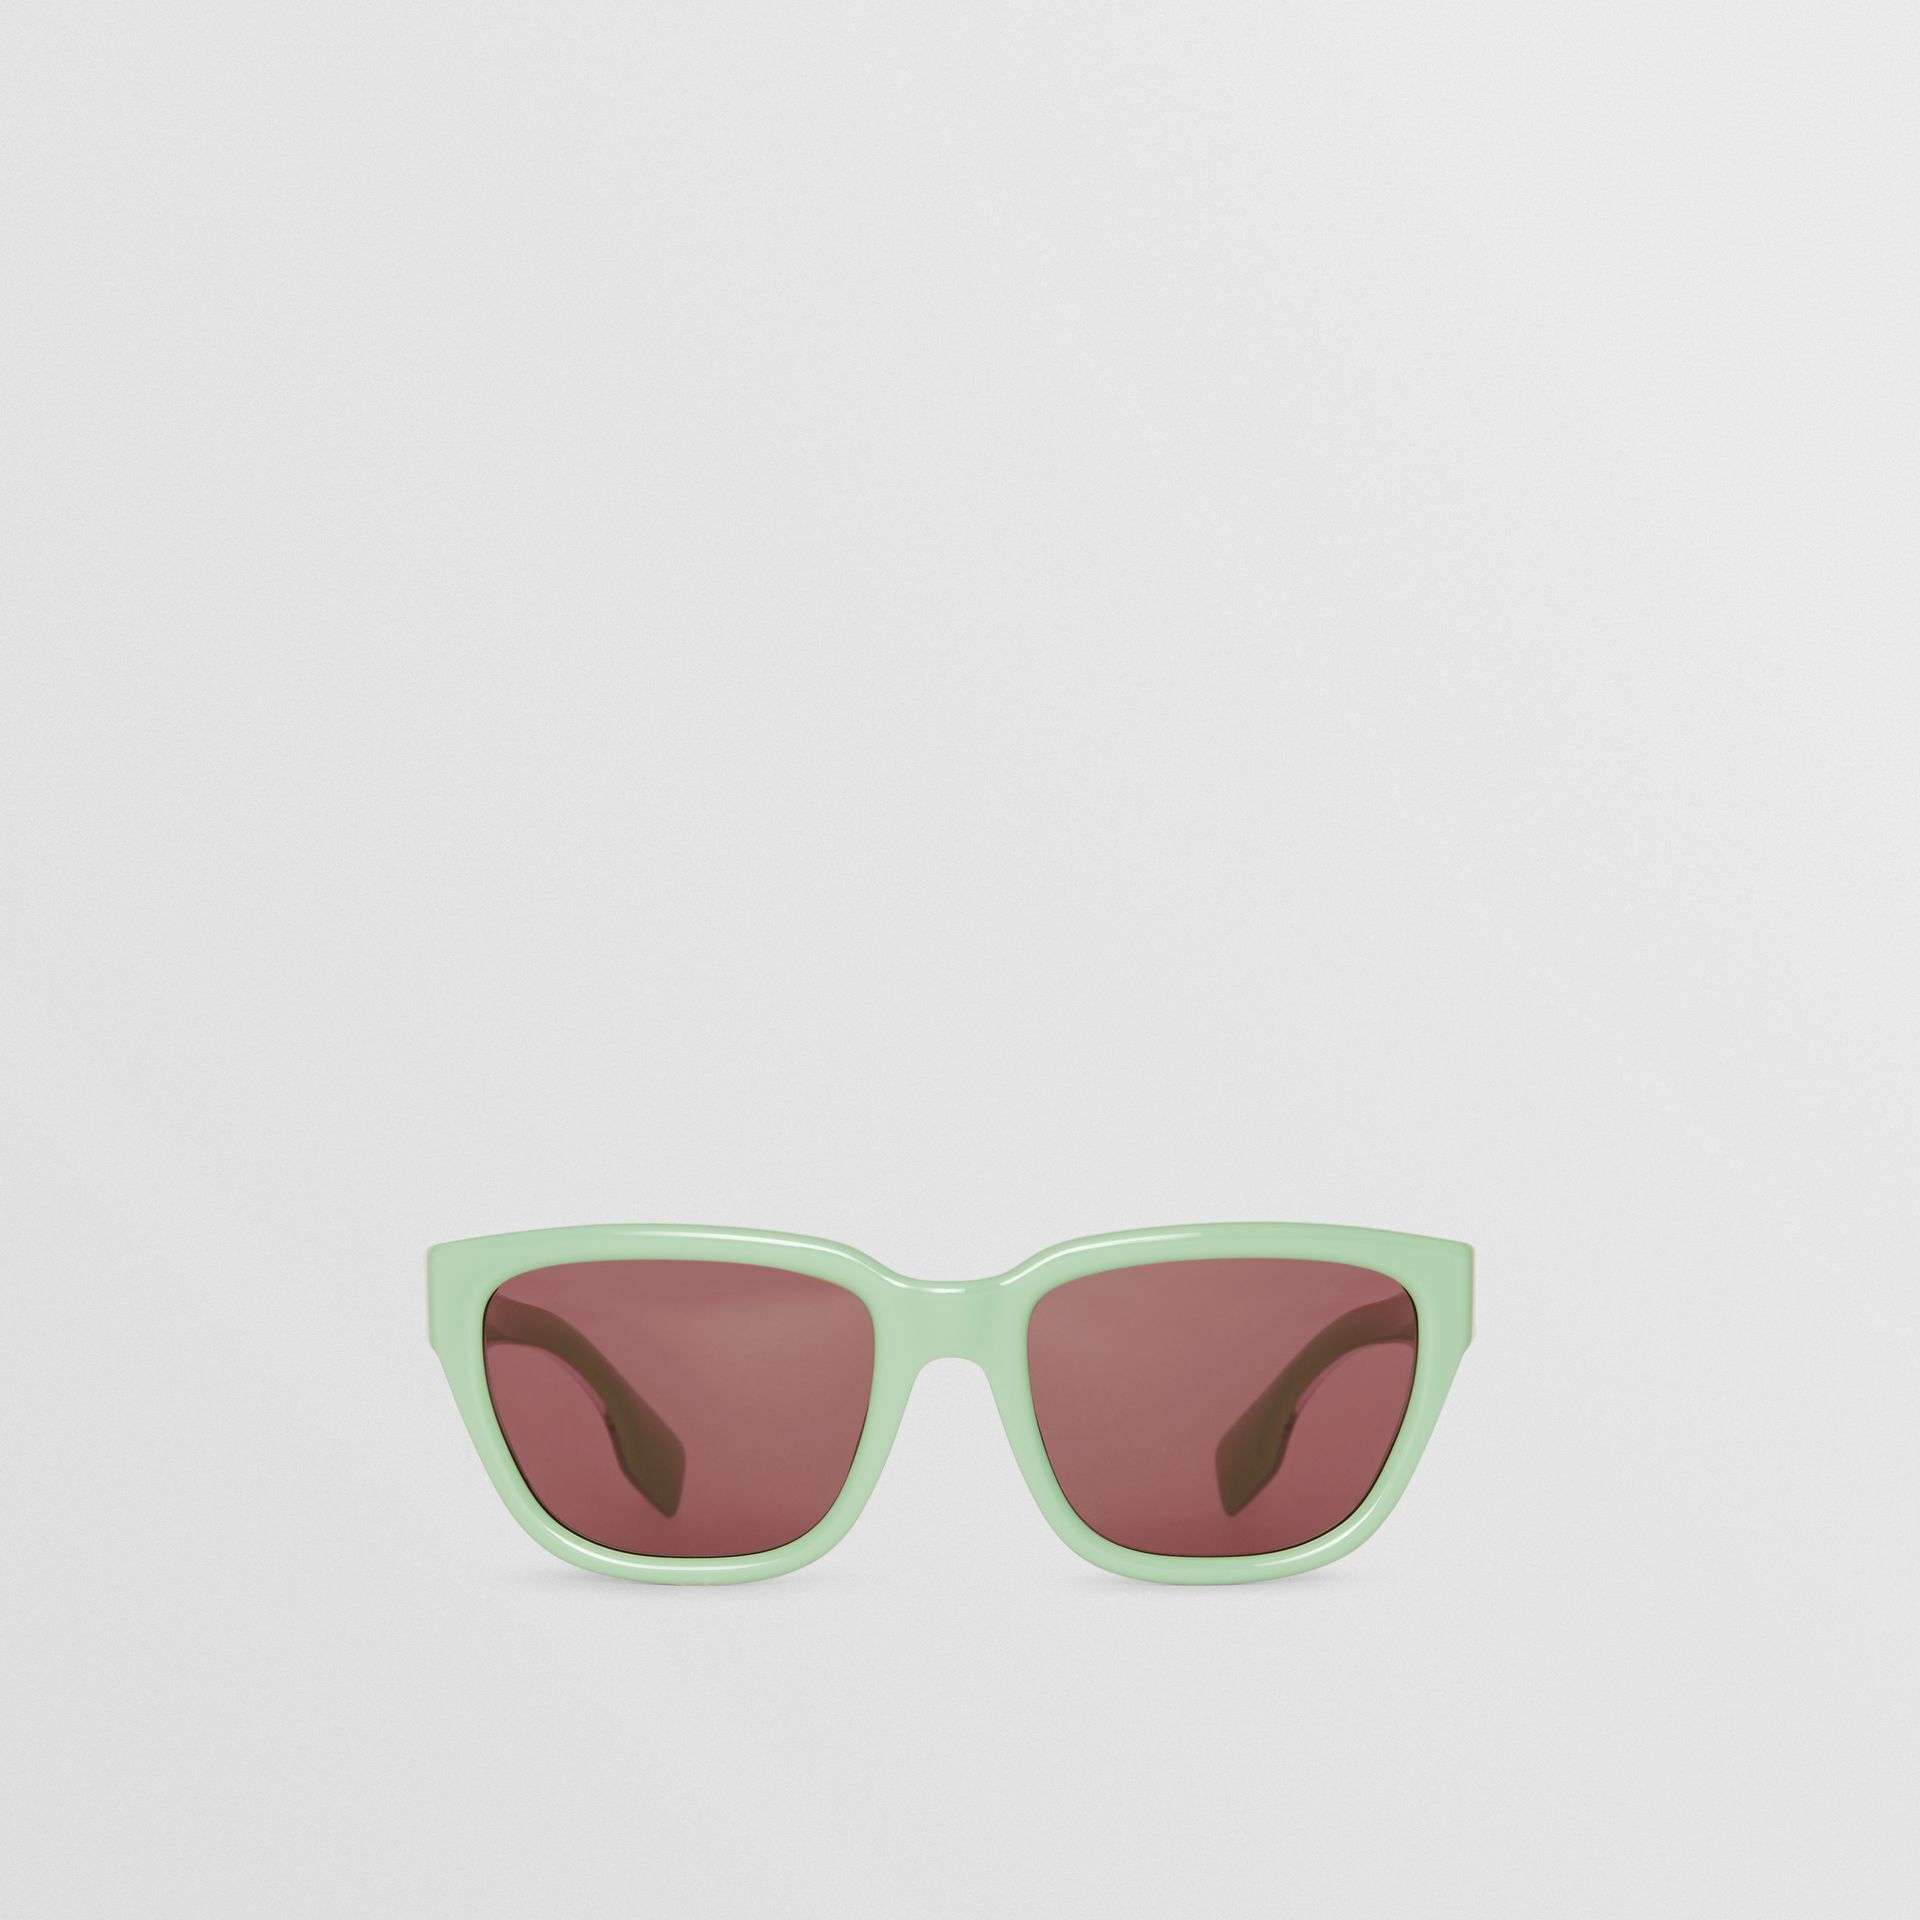 Square Frame Sunglasses in Mint Green - Women | Burberry United Kingdom - gallery image 0